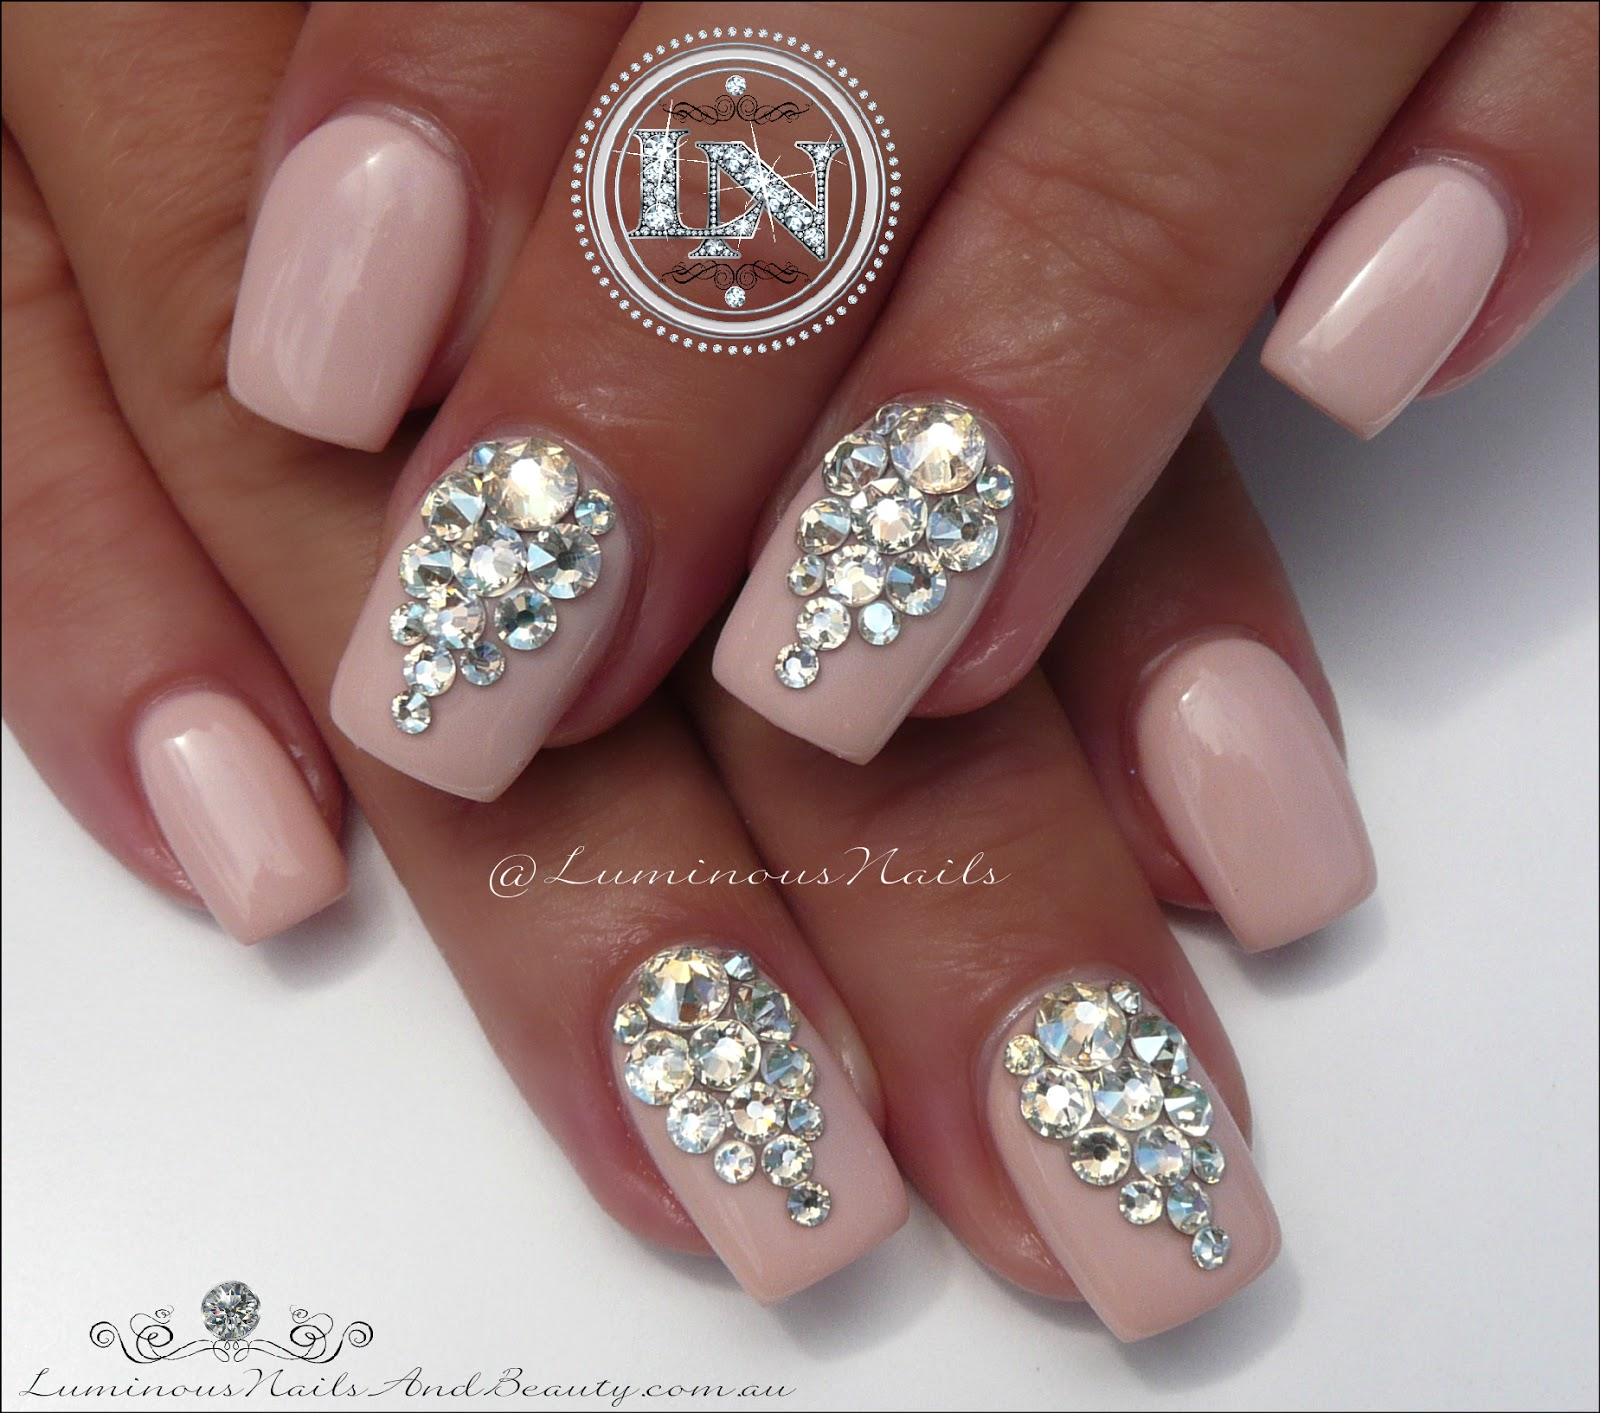 Bridal Nails Wedding With Swarovski Crystals